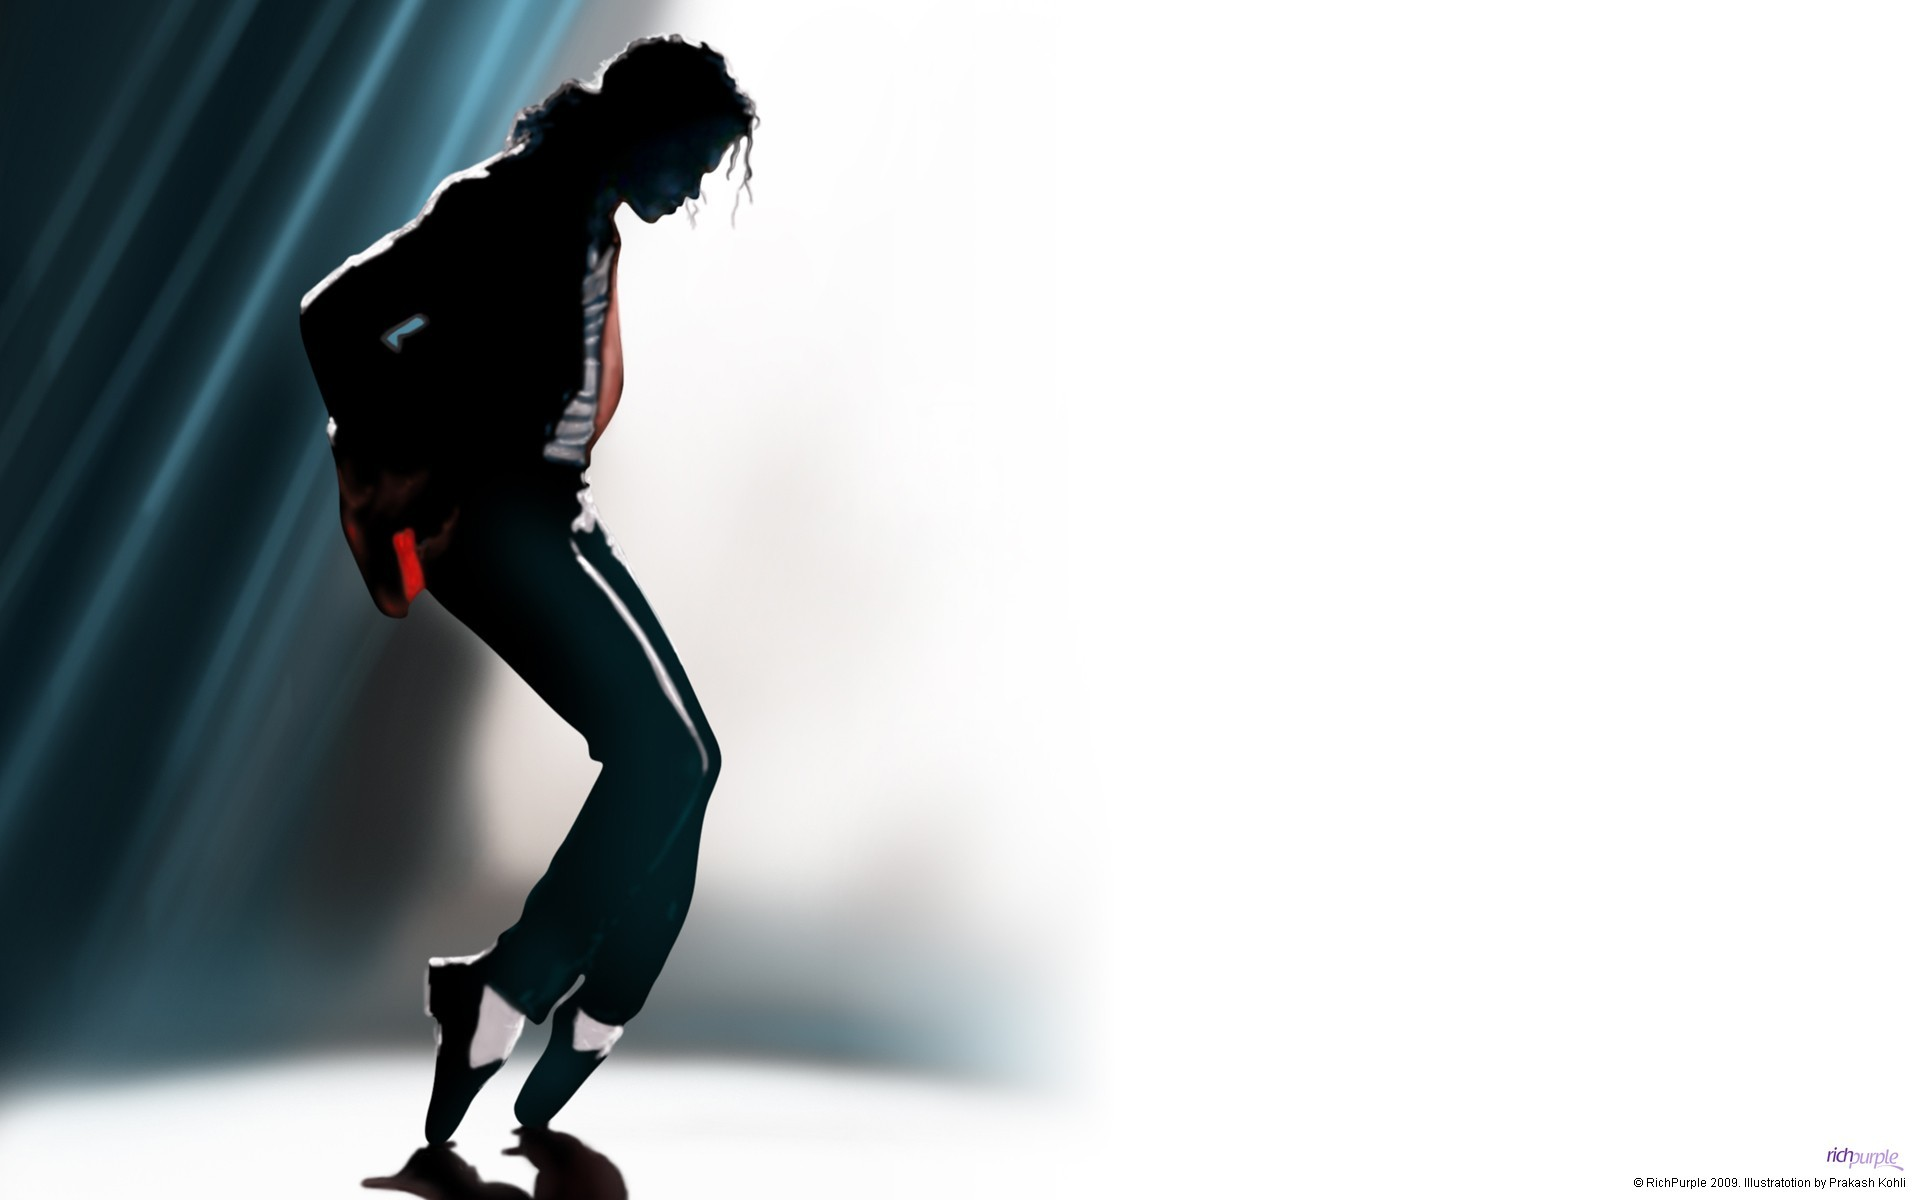 michael jackson images wallpapers - photo #19